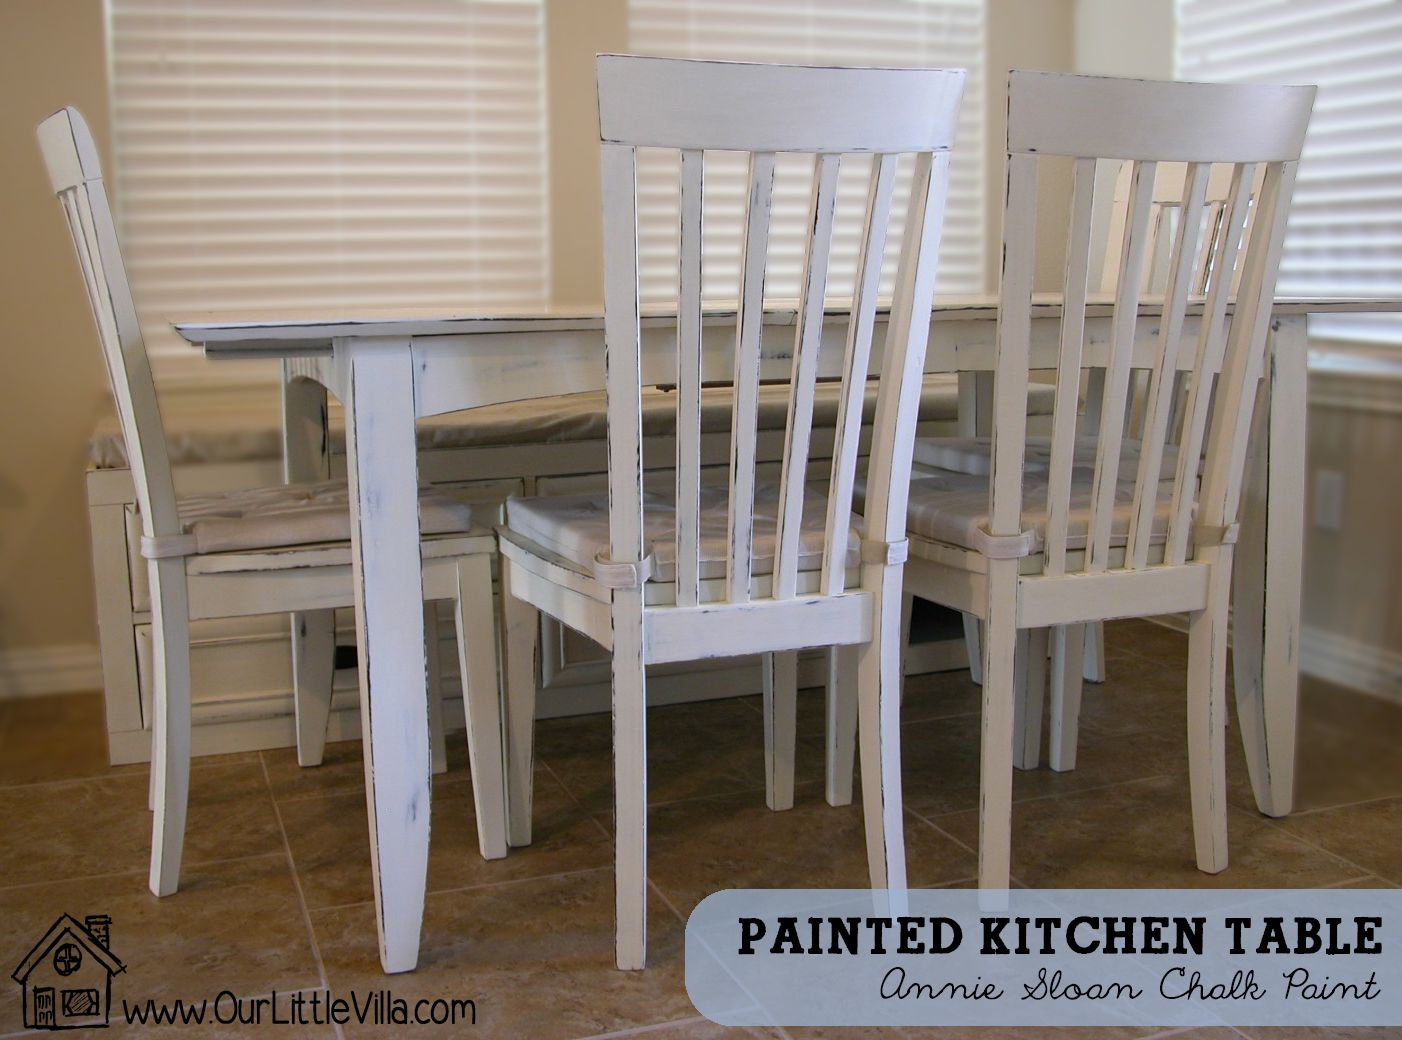 painted kitchen tables and chairs ideas   painting the kitchen table  u2013 annie sloan chalk paint painted kitchen tables and chairs ideas   painting the kitchen      rh   pinterest co uk